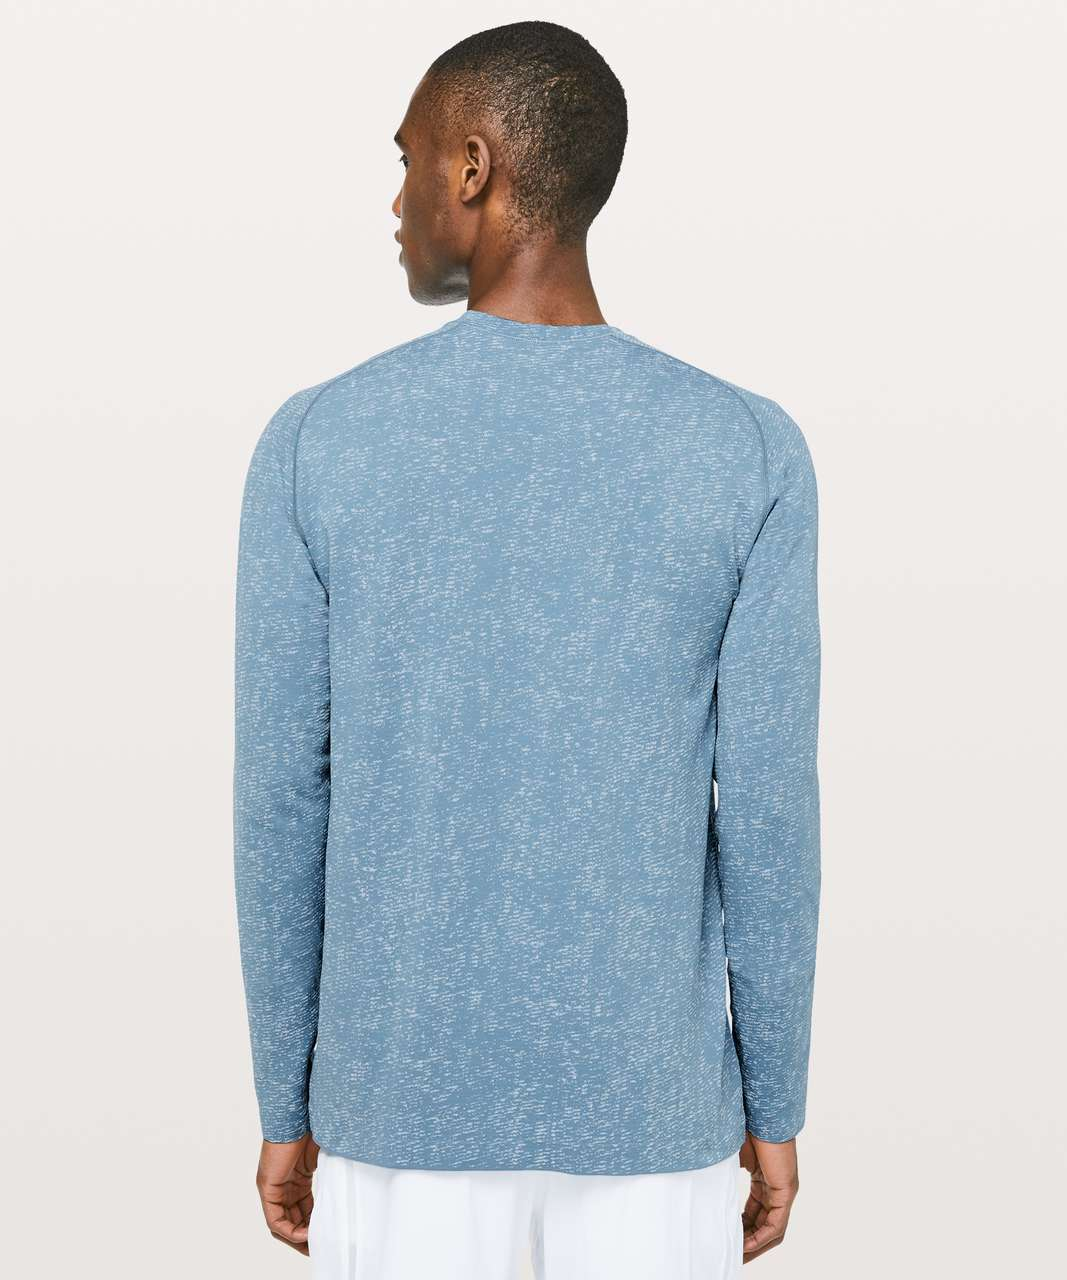 Lululemon Metal Vent Tech Long Sleeve - Utility Blue / White